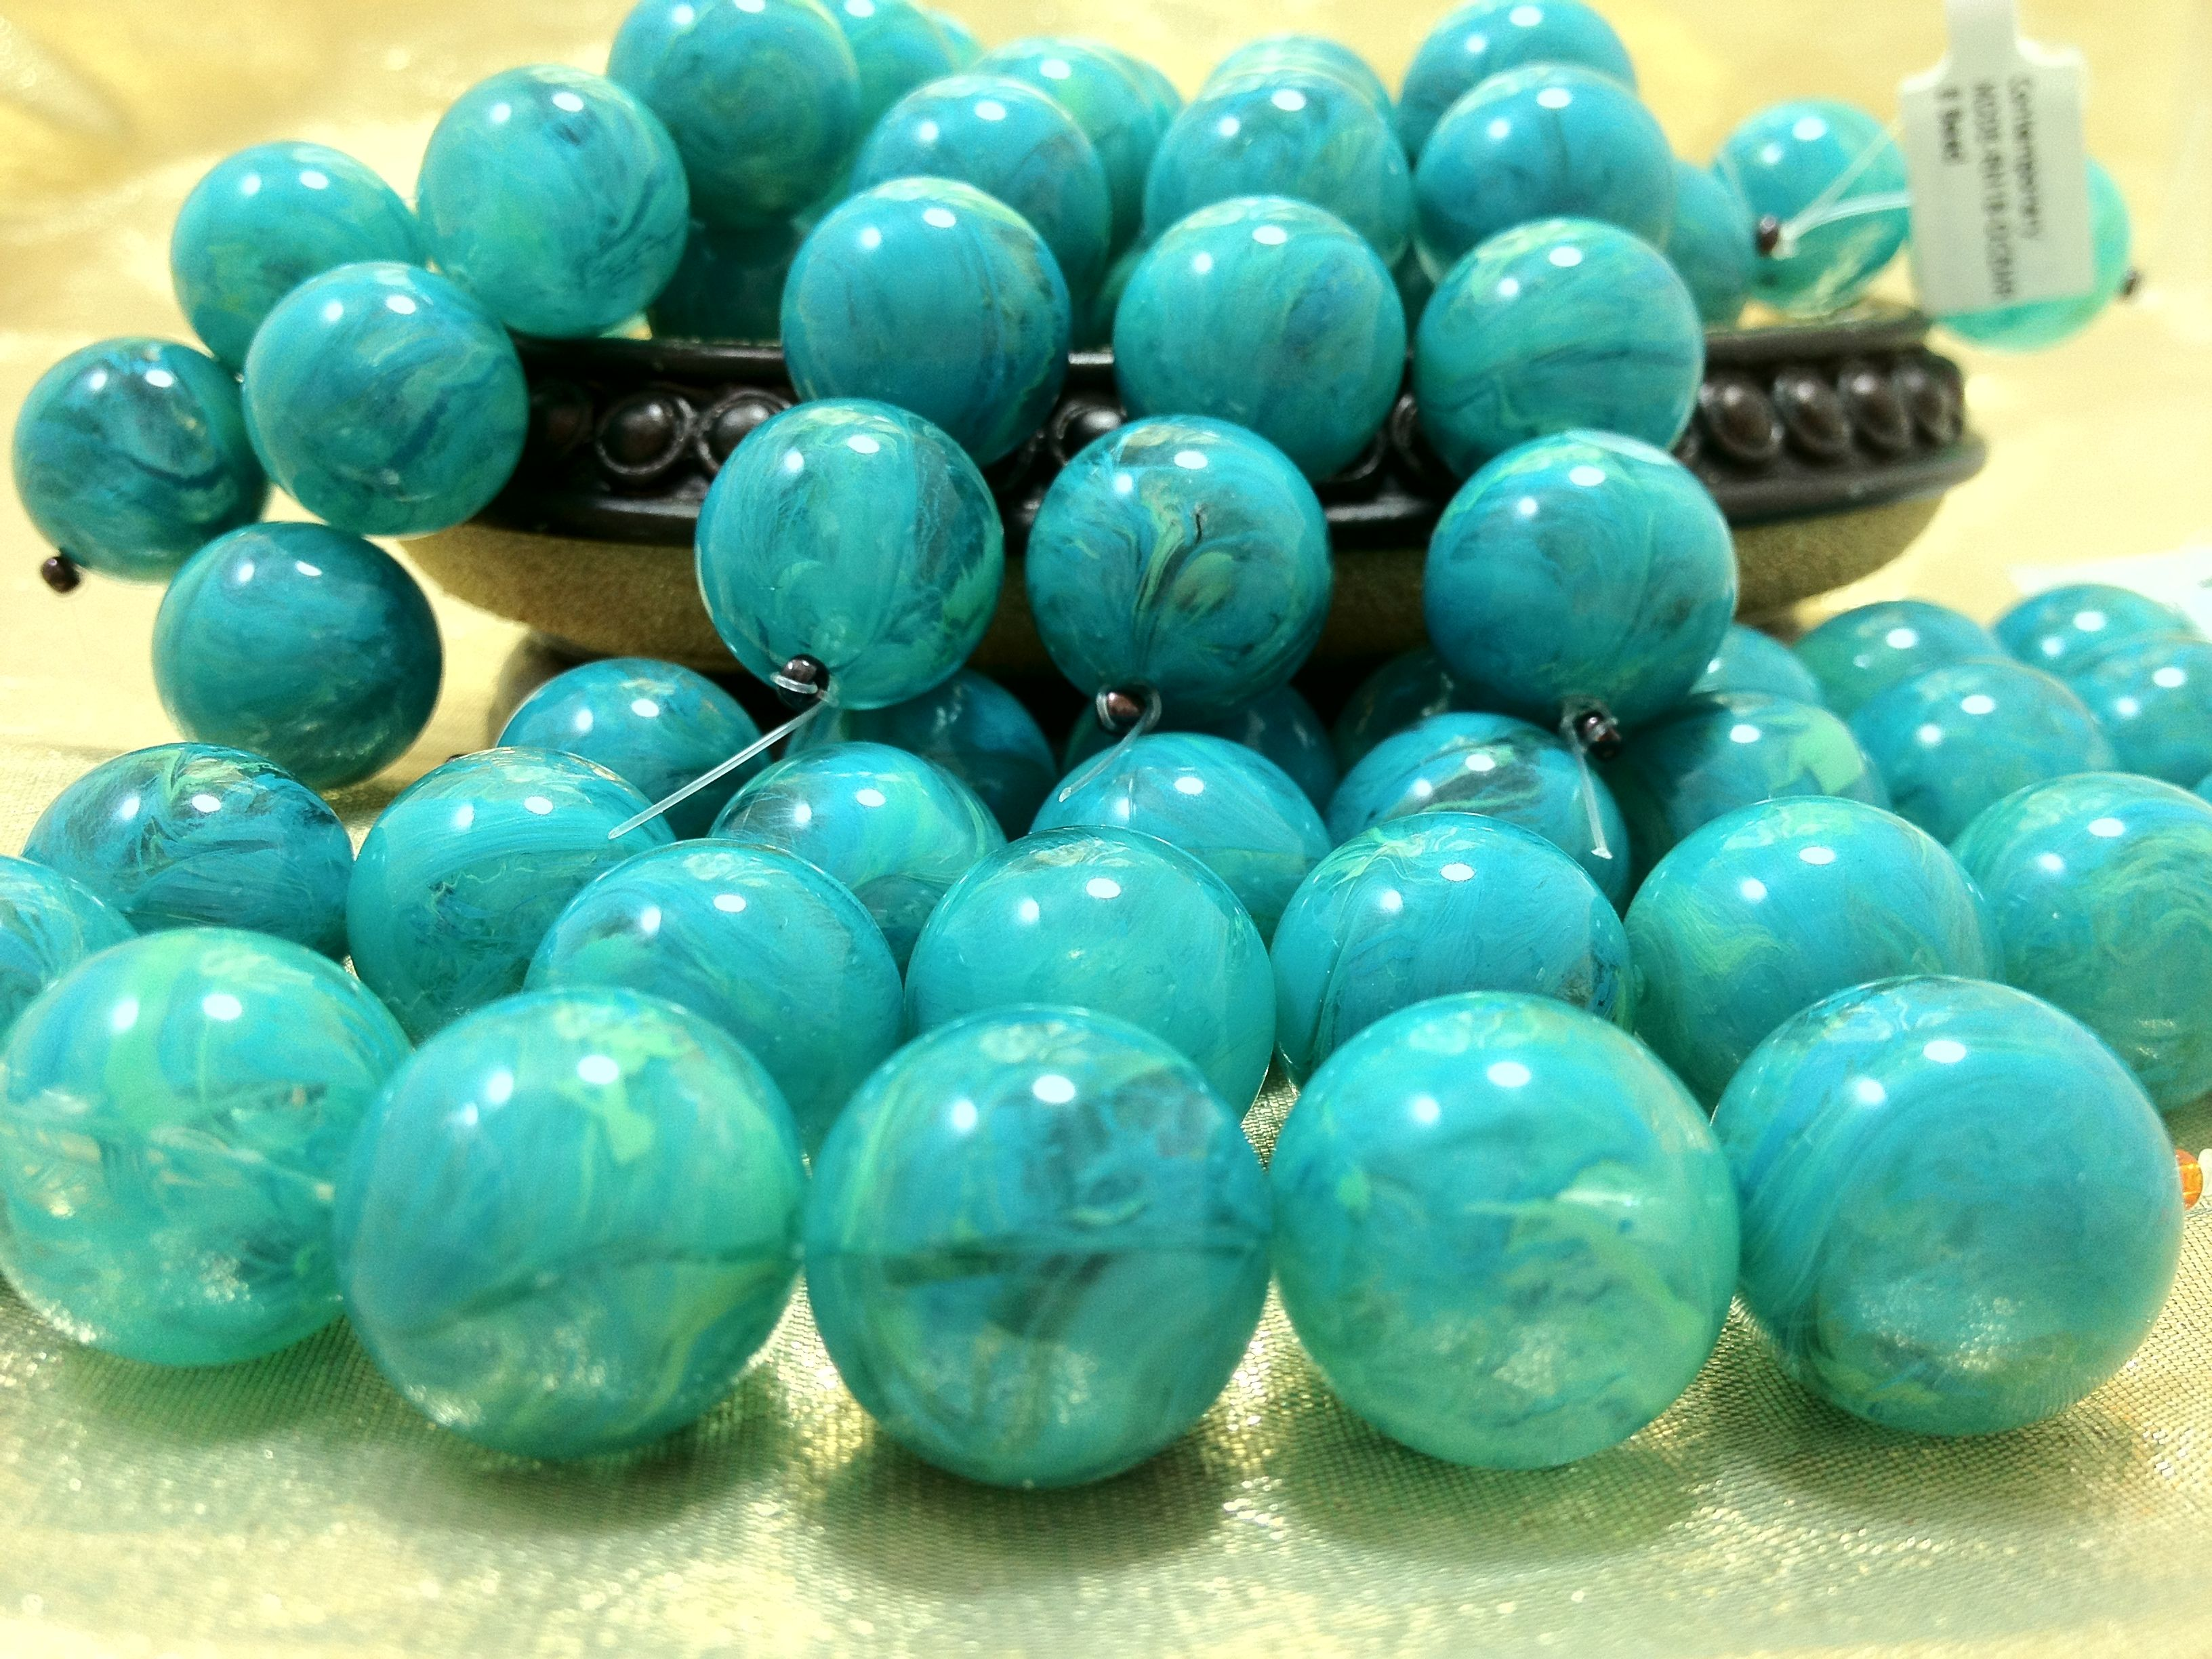 market jewelry facted glass lot beads rondelle making for sale etsy whole crystl il loose spacer lrla